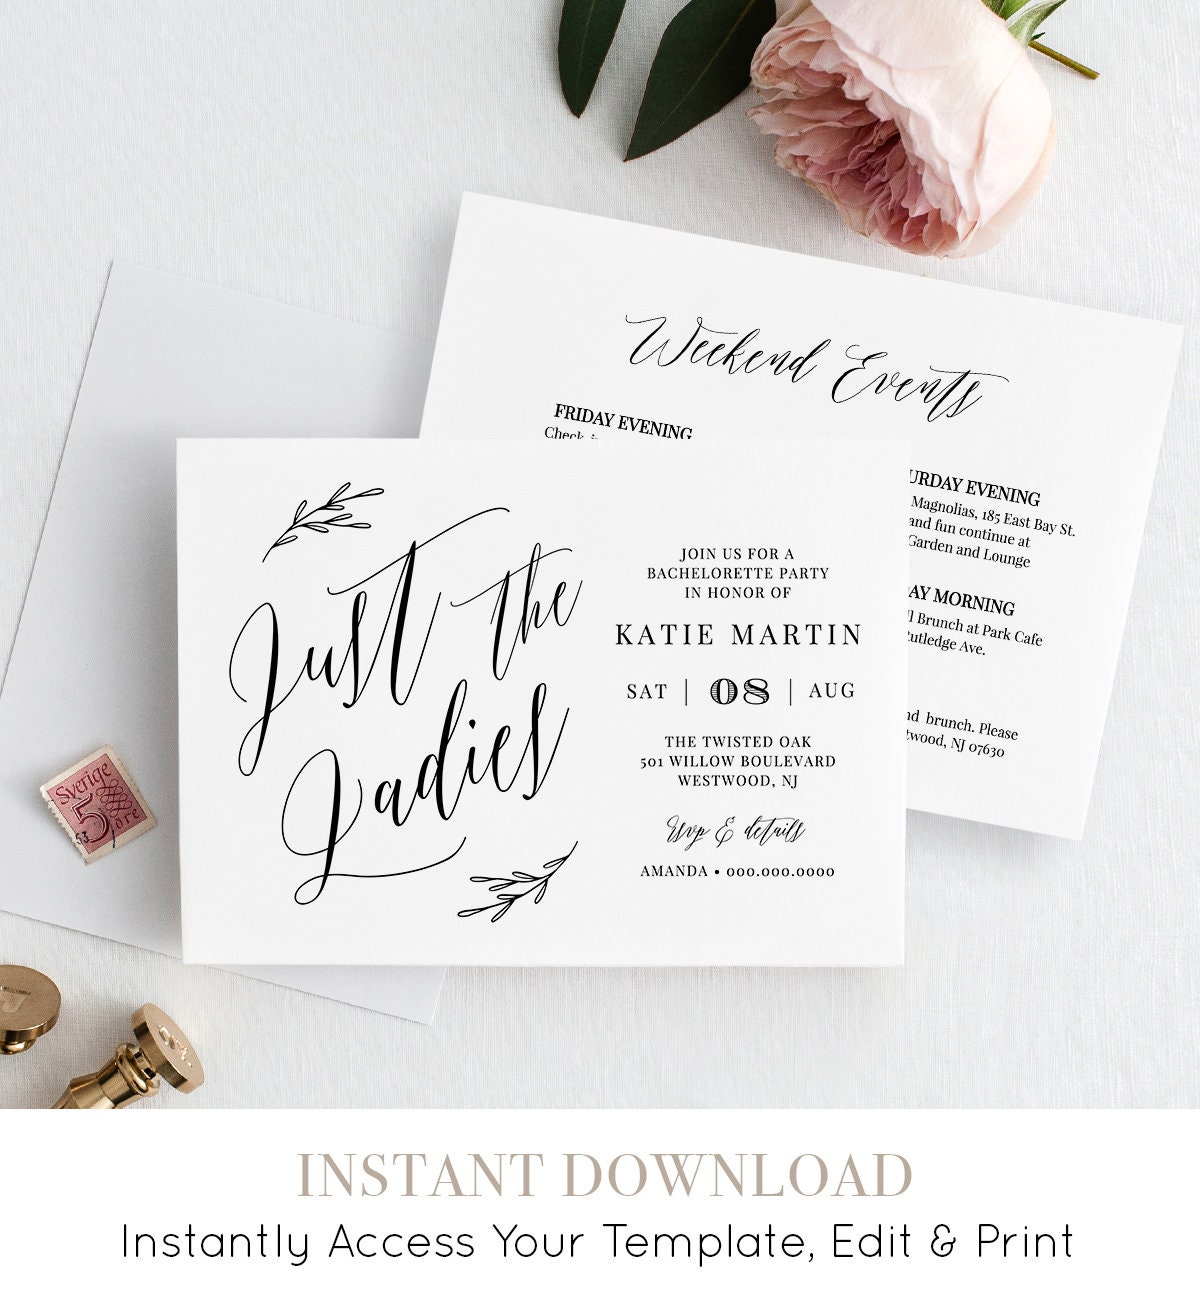 bachelorette party invitation itinerary instant download